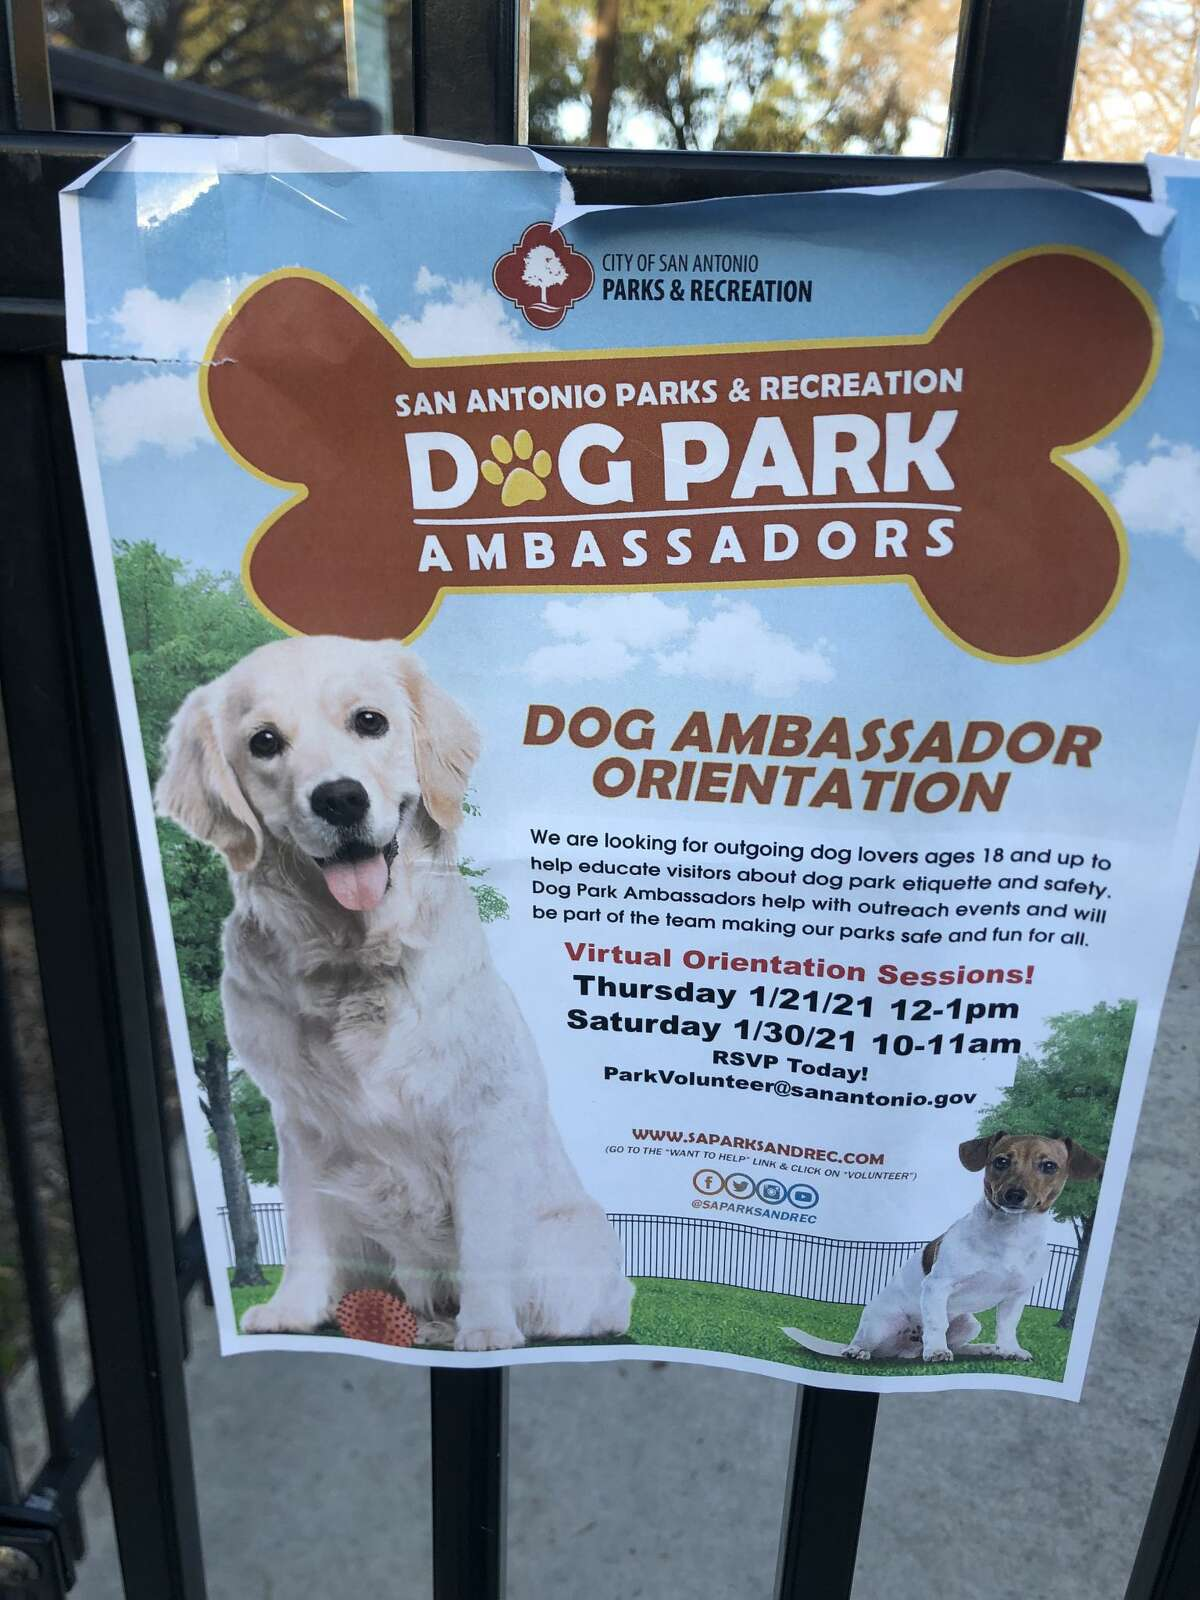 S.A. Parks & Rec is searching for dog park ambassadors to help educate park visitors and organize park events.